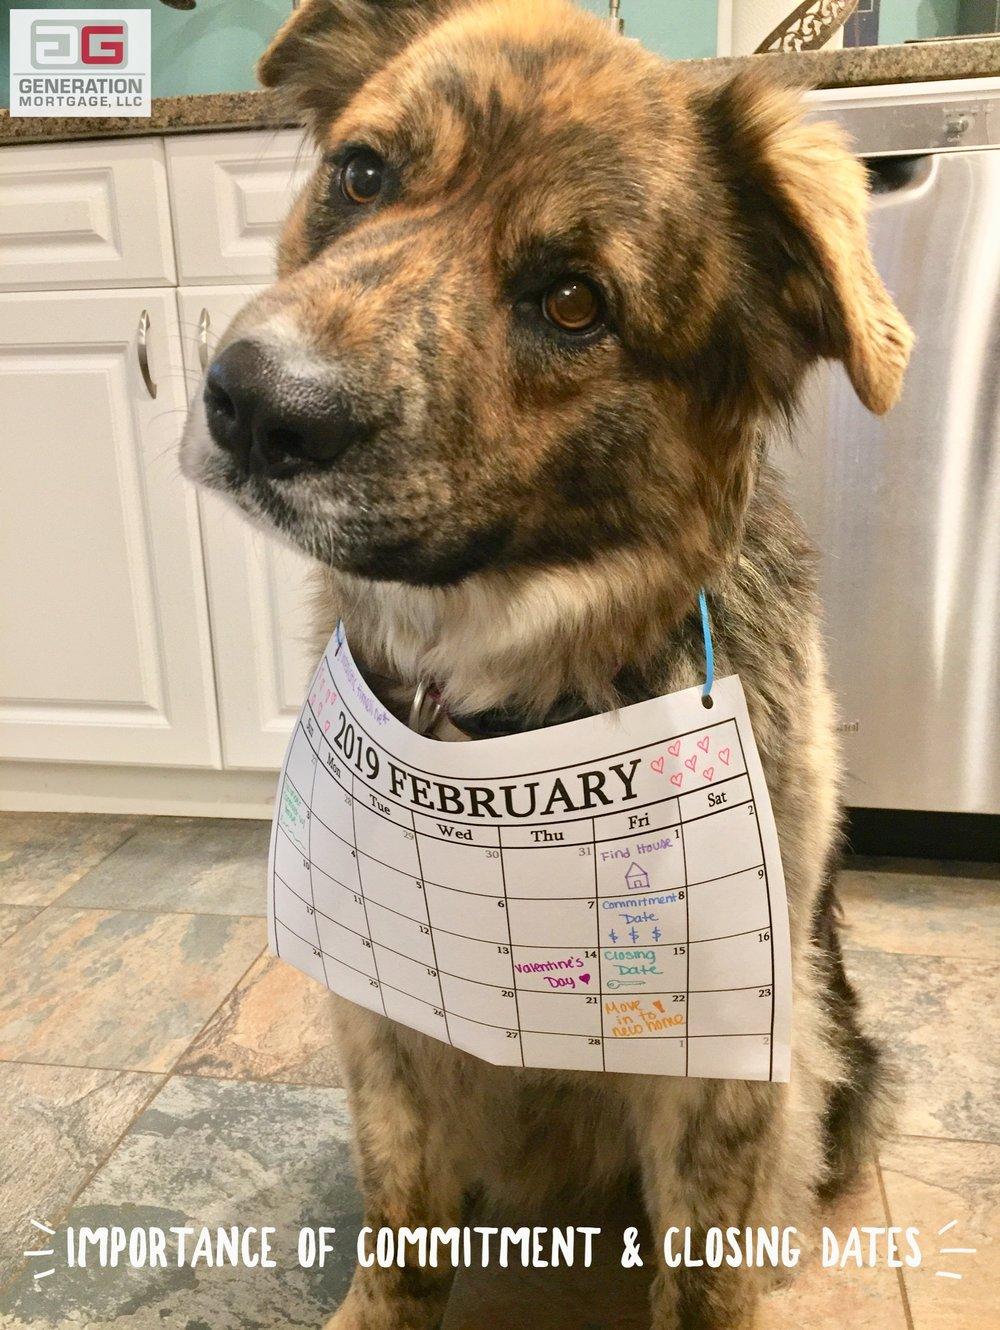 Puppy modeling a calendar that shows the important dates during purchasing a home, such as the commitment and closing dates.